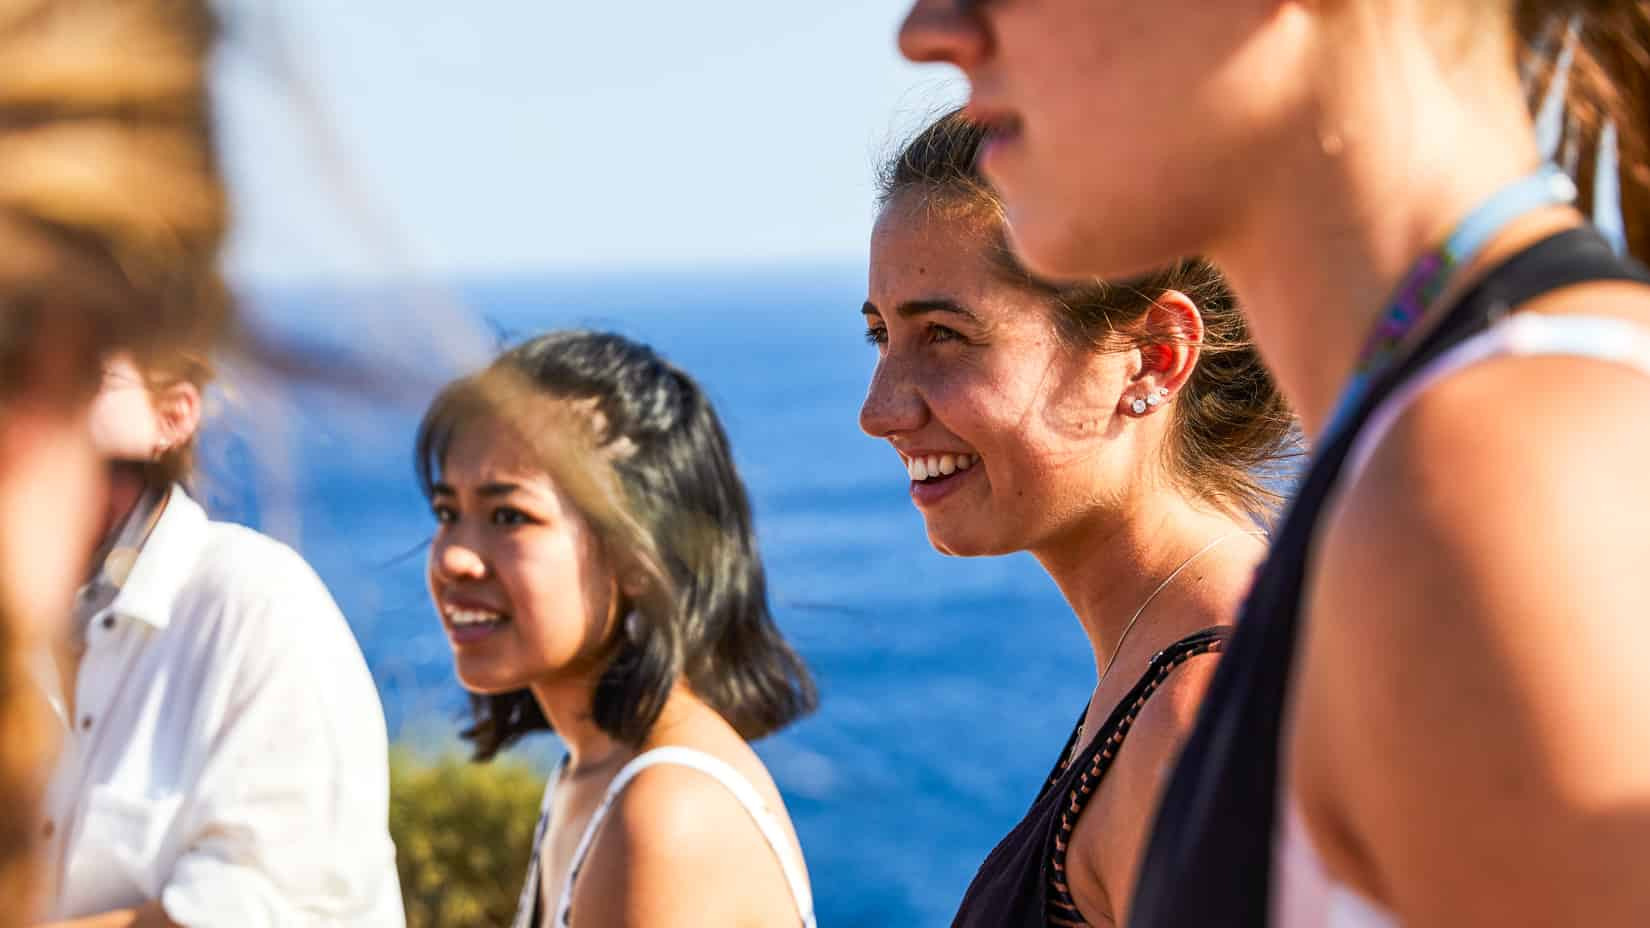 Students on an excursion to the temple of Poseidon.